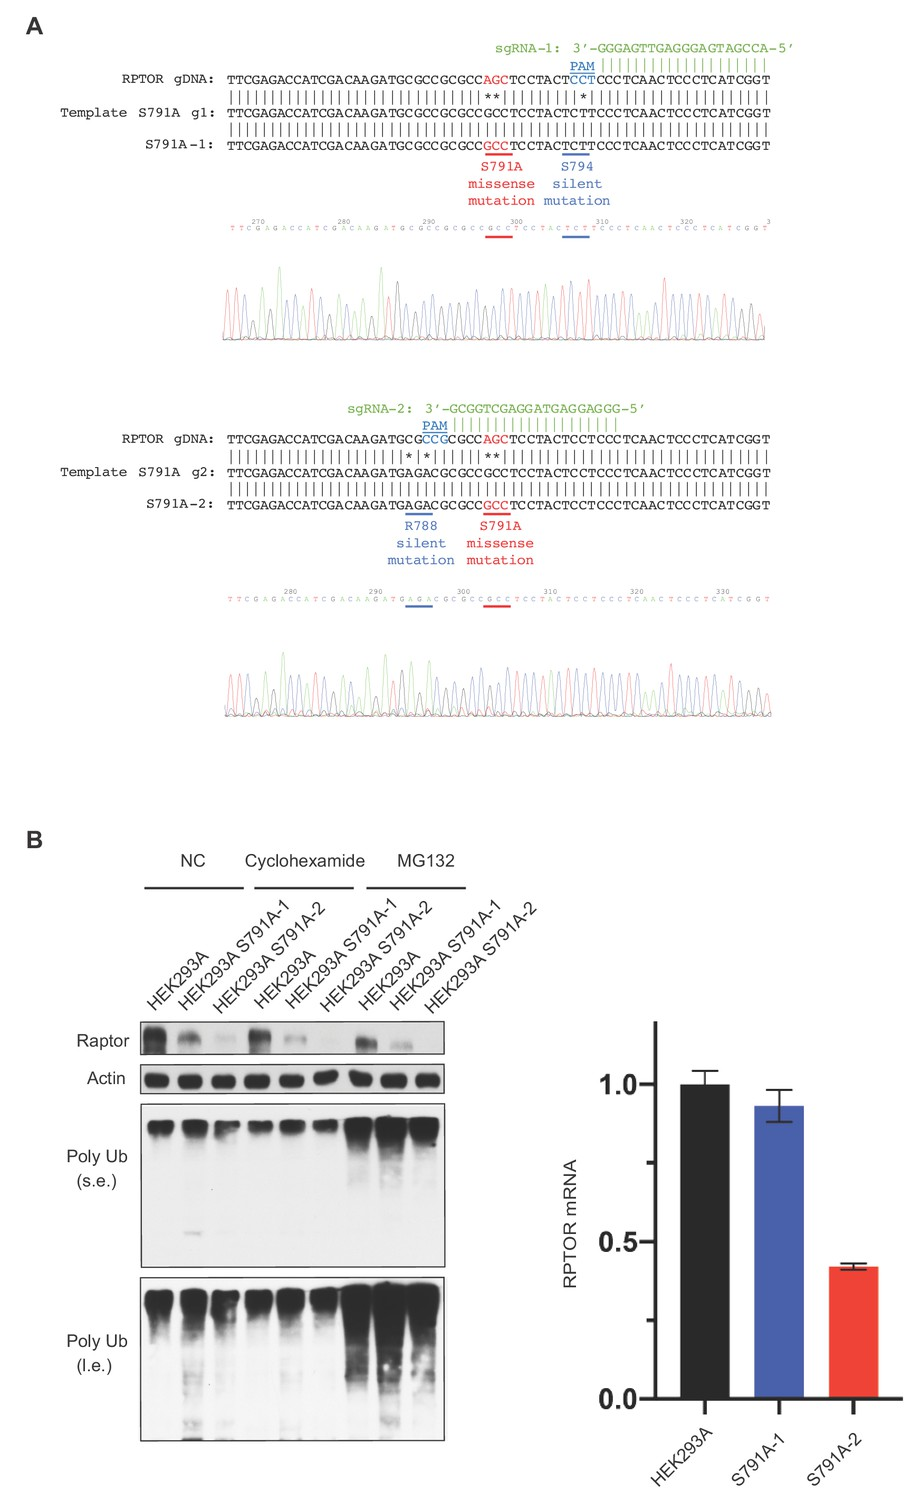 GPCR signaling inhibits mTORC1 via PKA phosphorylation of Raptor | eLife